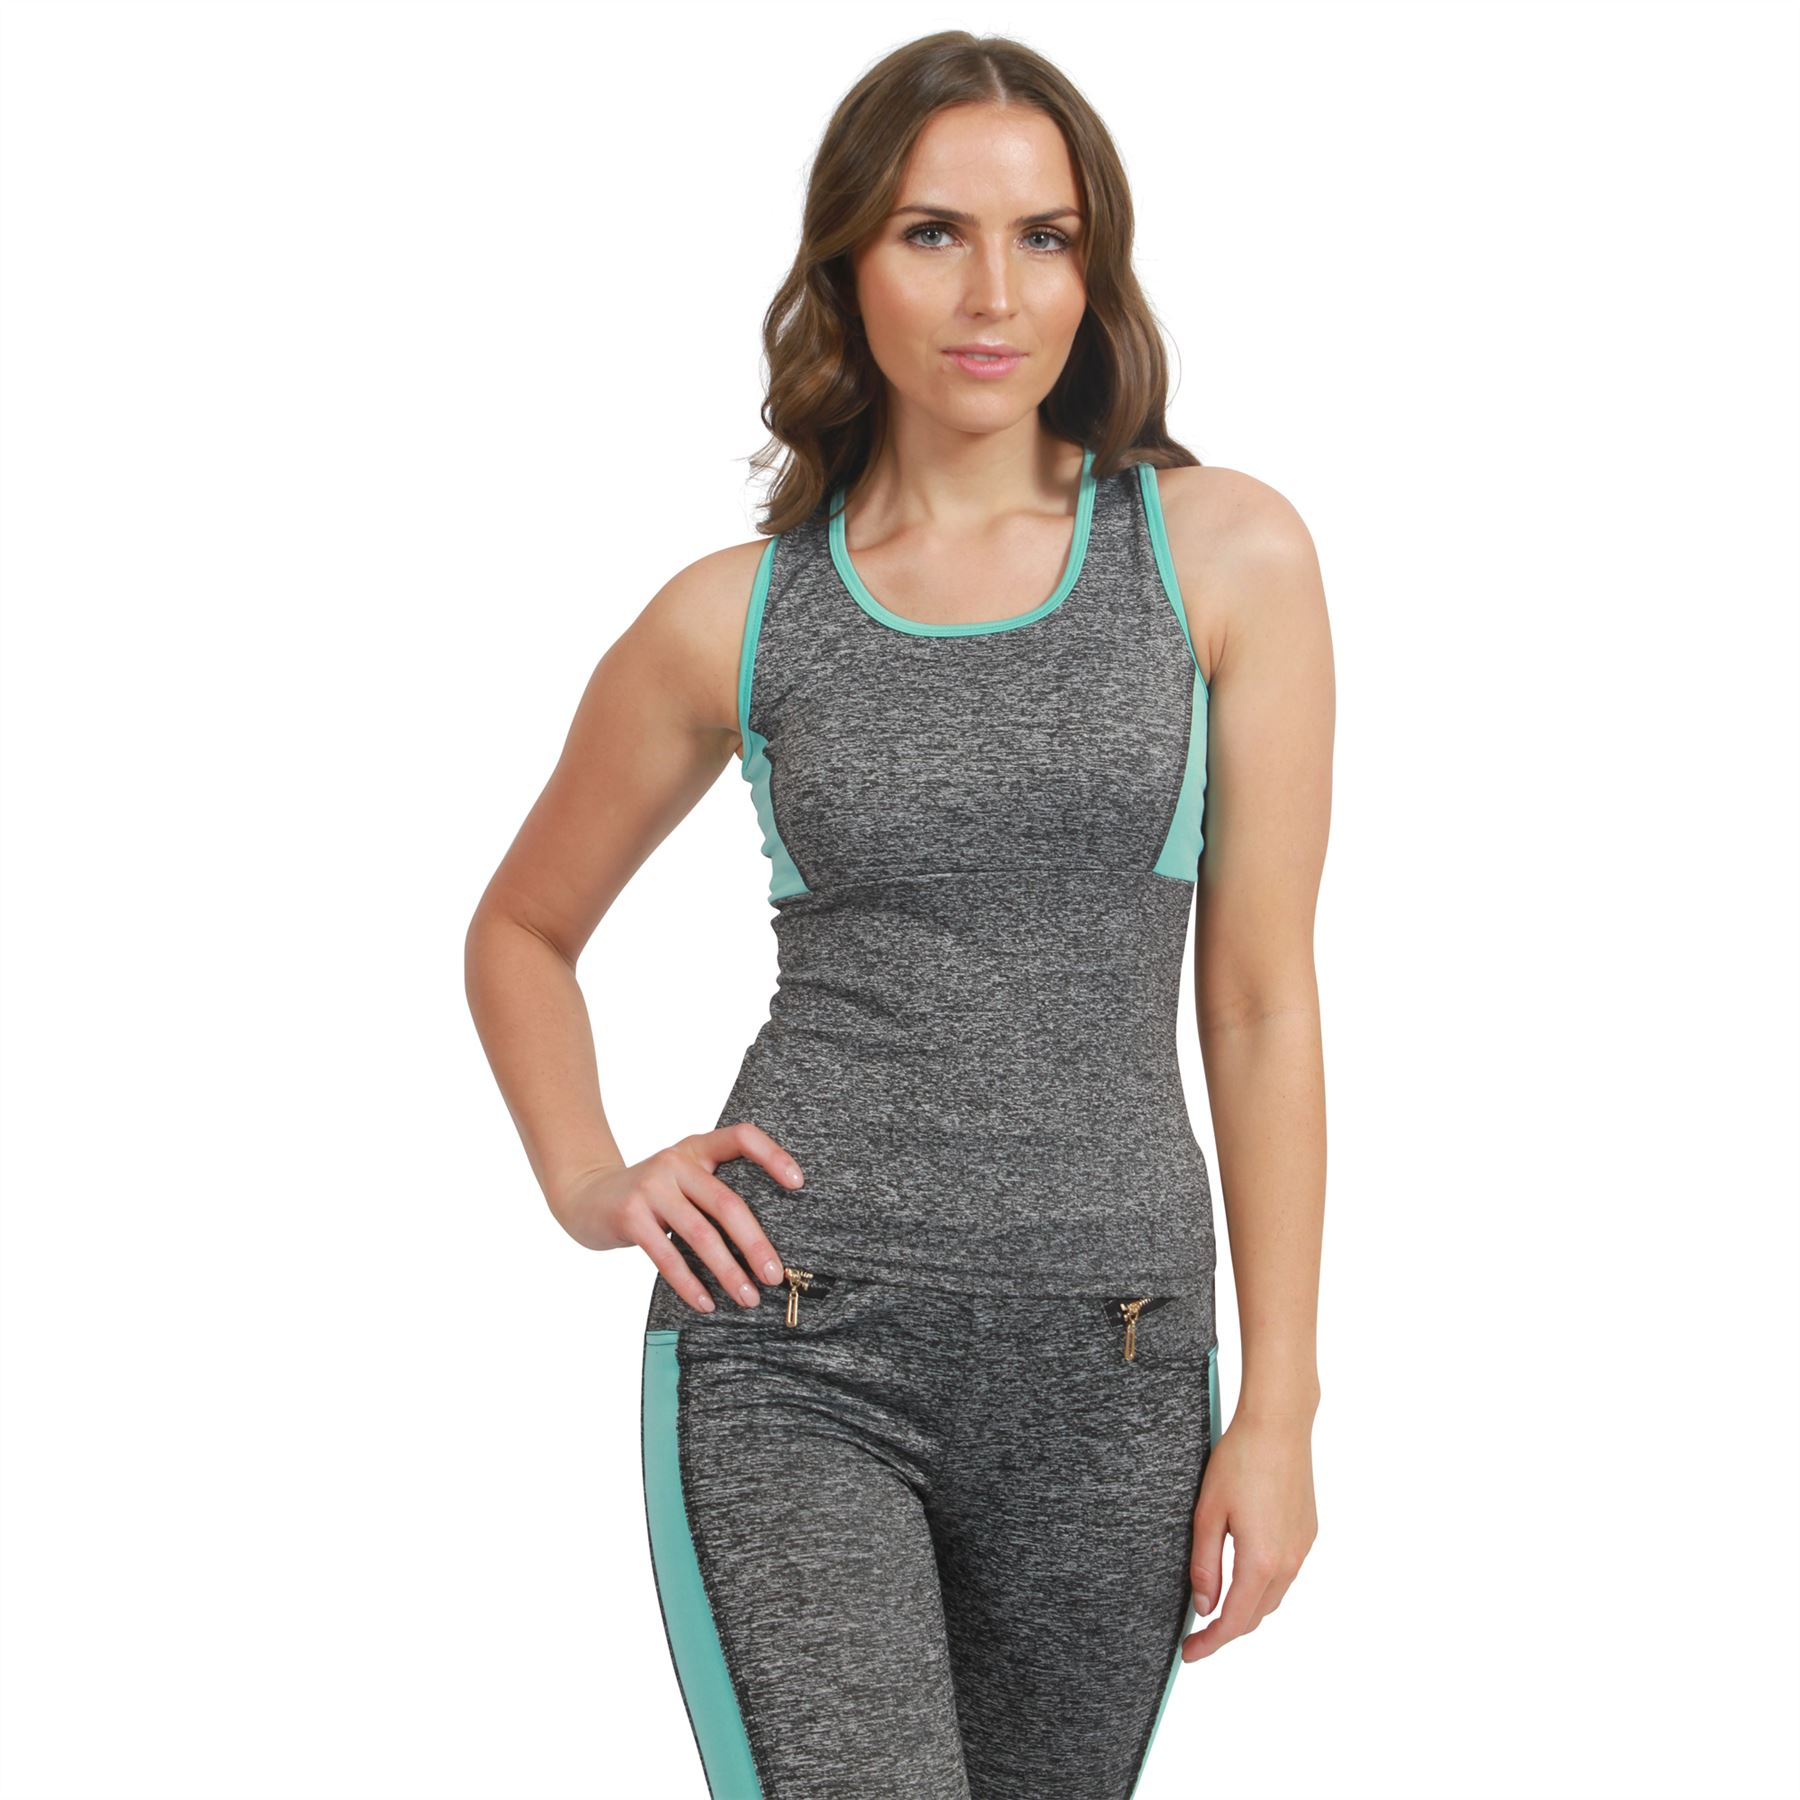 We believe that our women's activewear should look good, feel good, and fit you as well as your street clothes. Our exclusive collection is made up of athleisure pieces perfect for yoga.